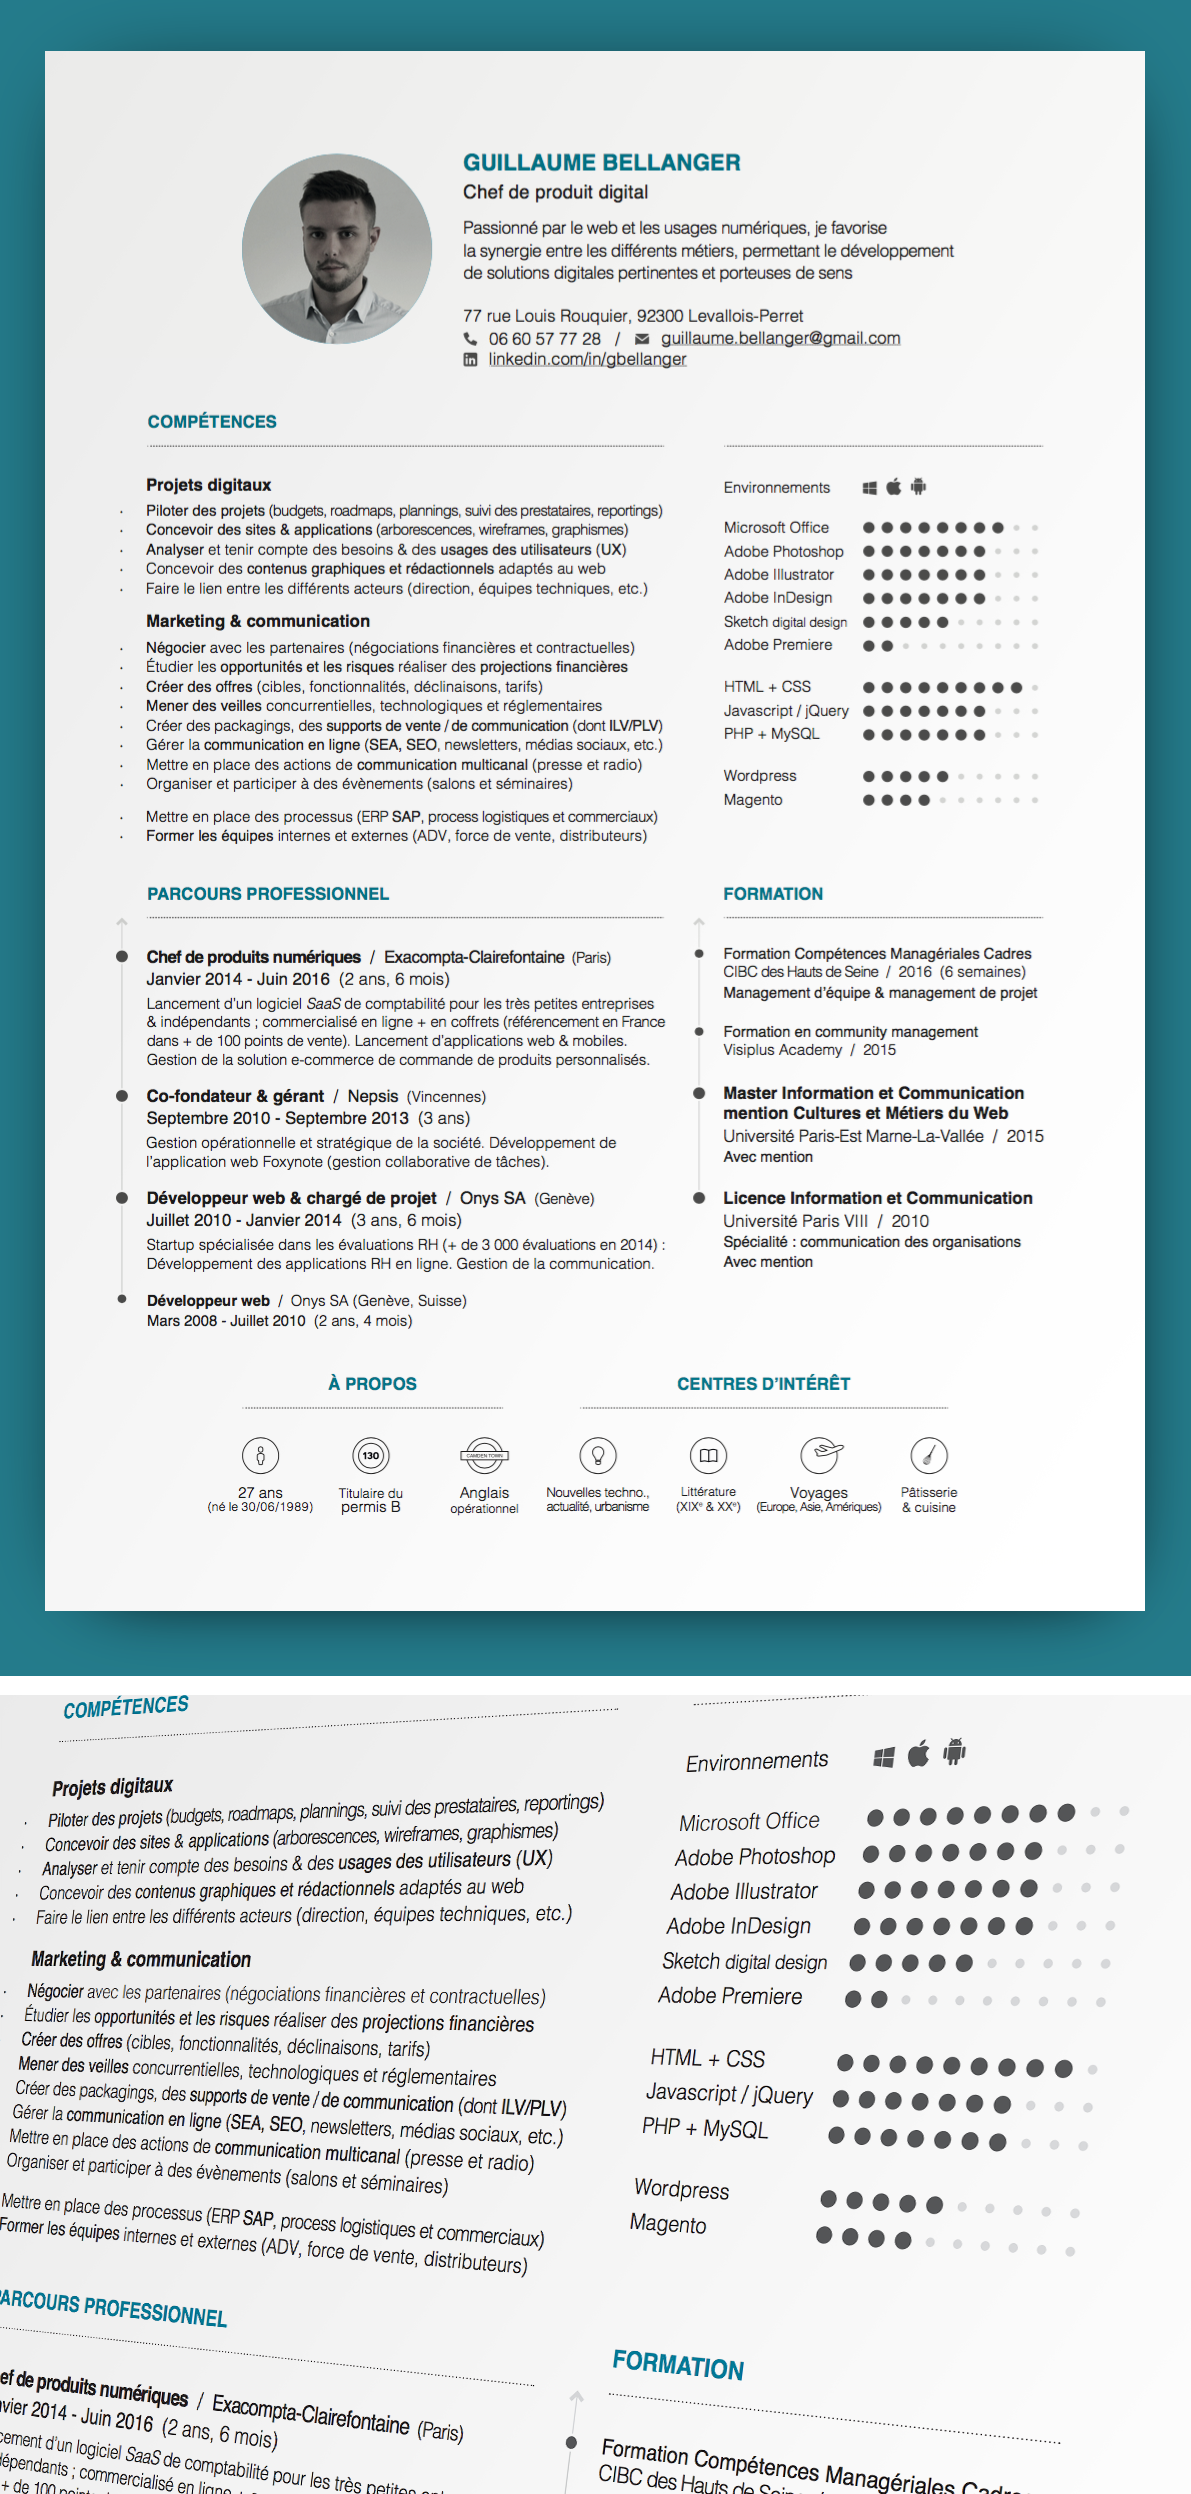 curriculum vitae cv resume    guillaume bellanger    chef de